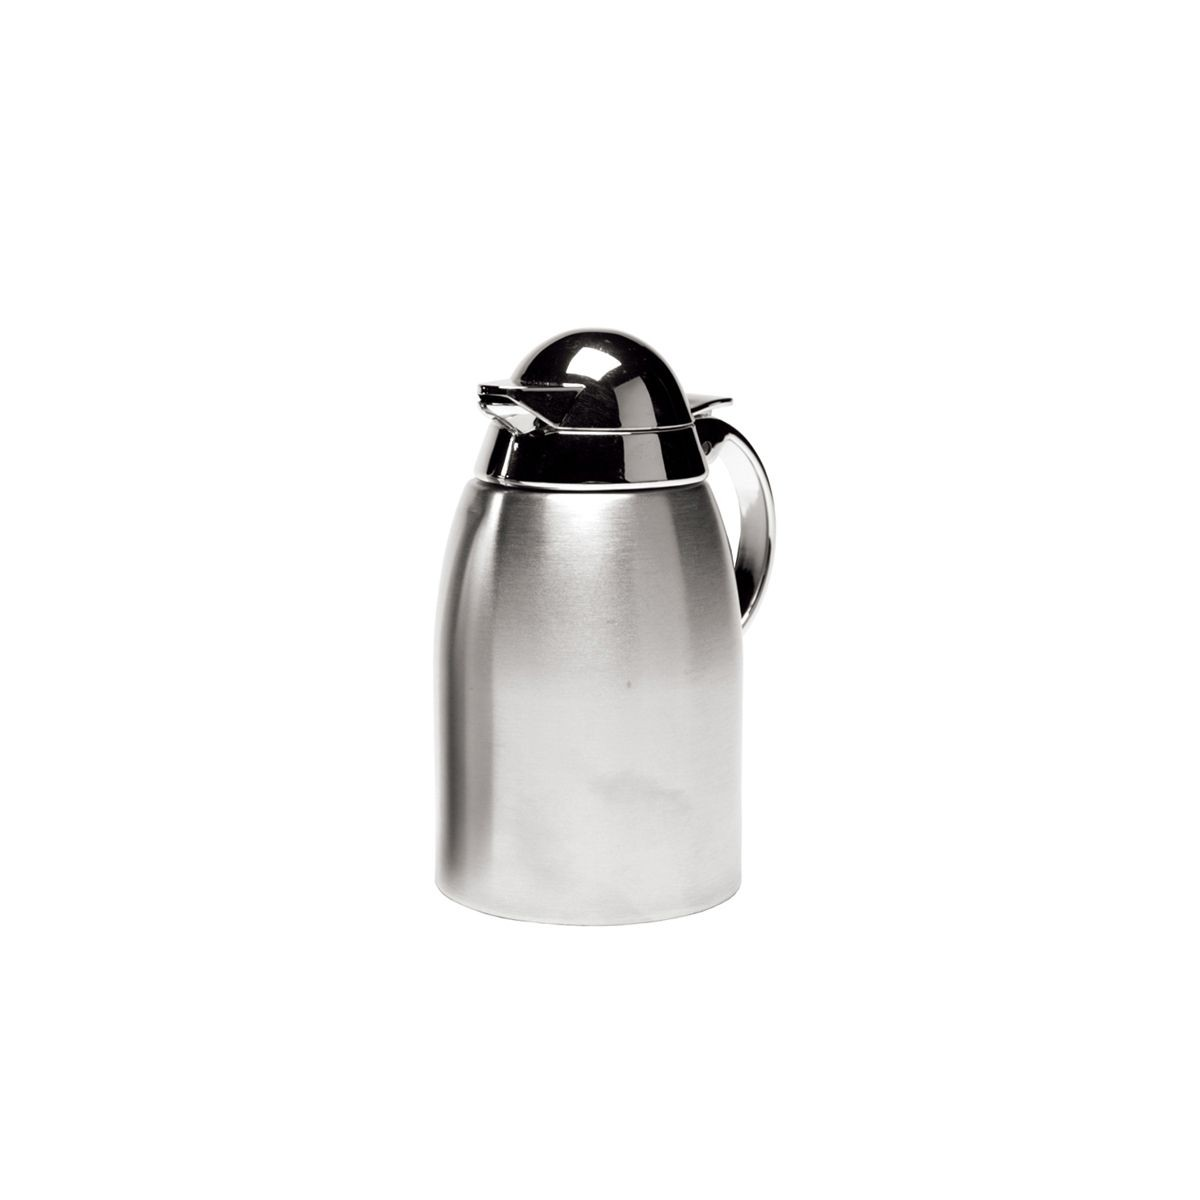 Service Ideas SC85 Stainless Creamer Dispenser with Chrome-Plated Plastic Lid 8.5 oz.